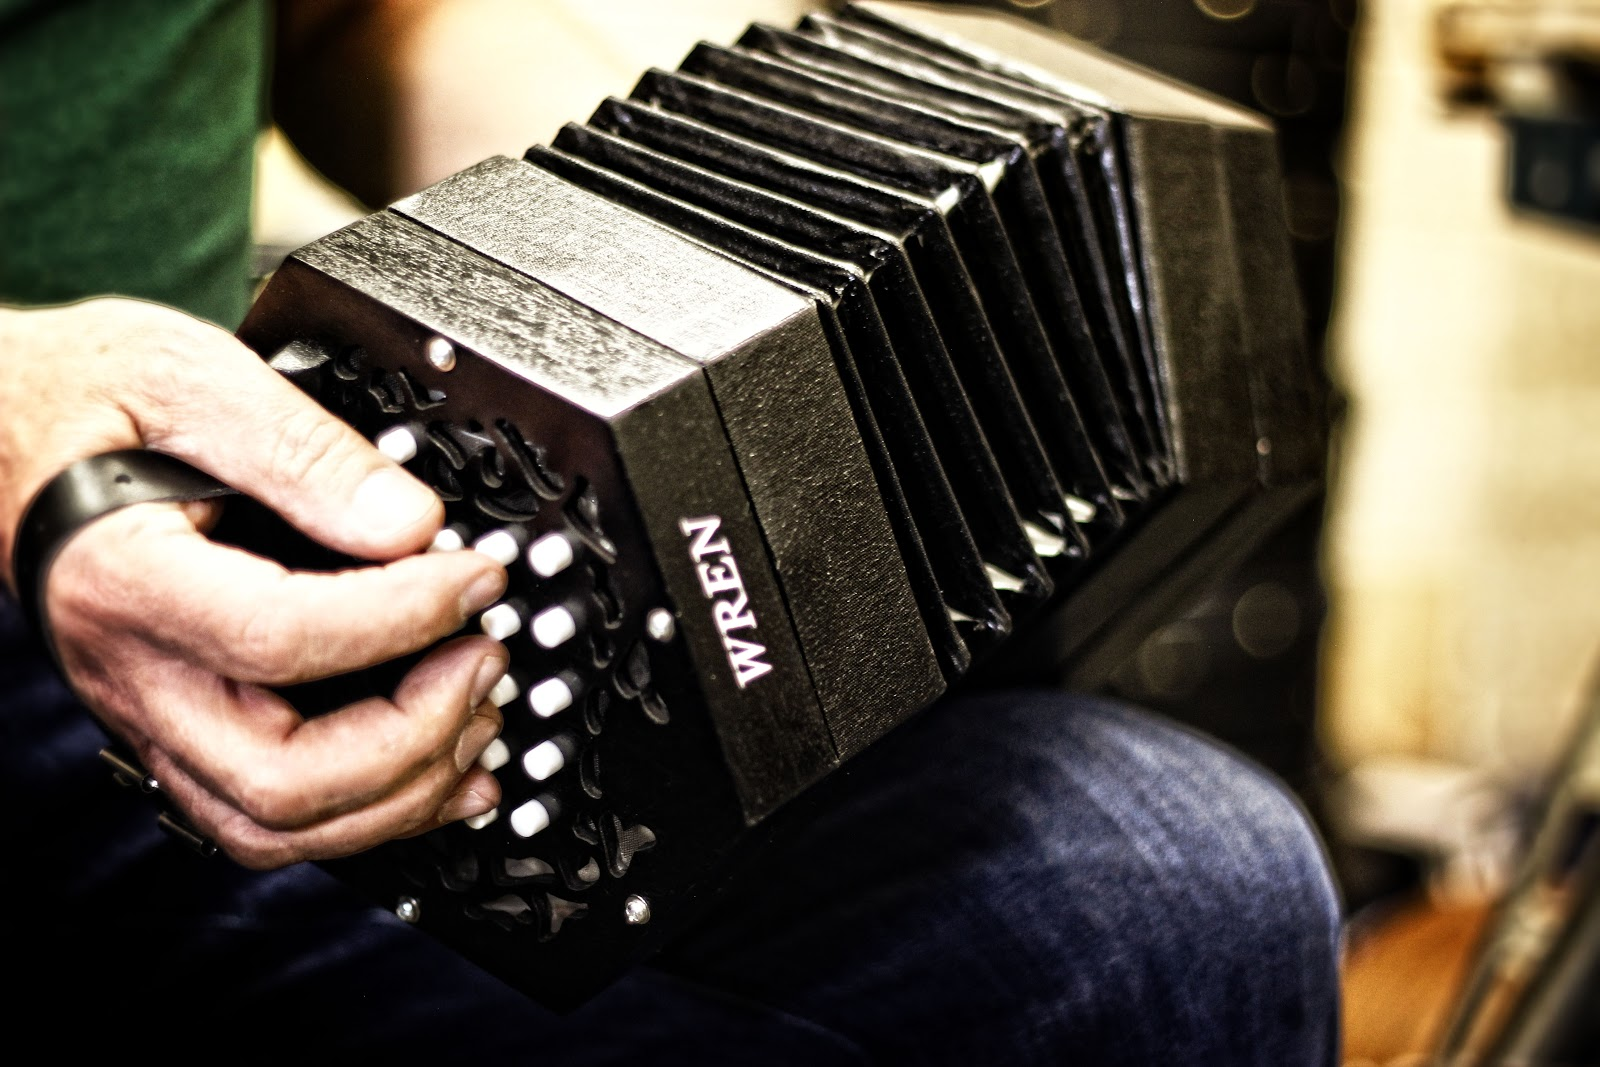 The Wren 2 concertina is the best beginner concertina on the market.